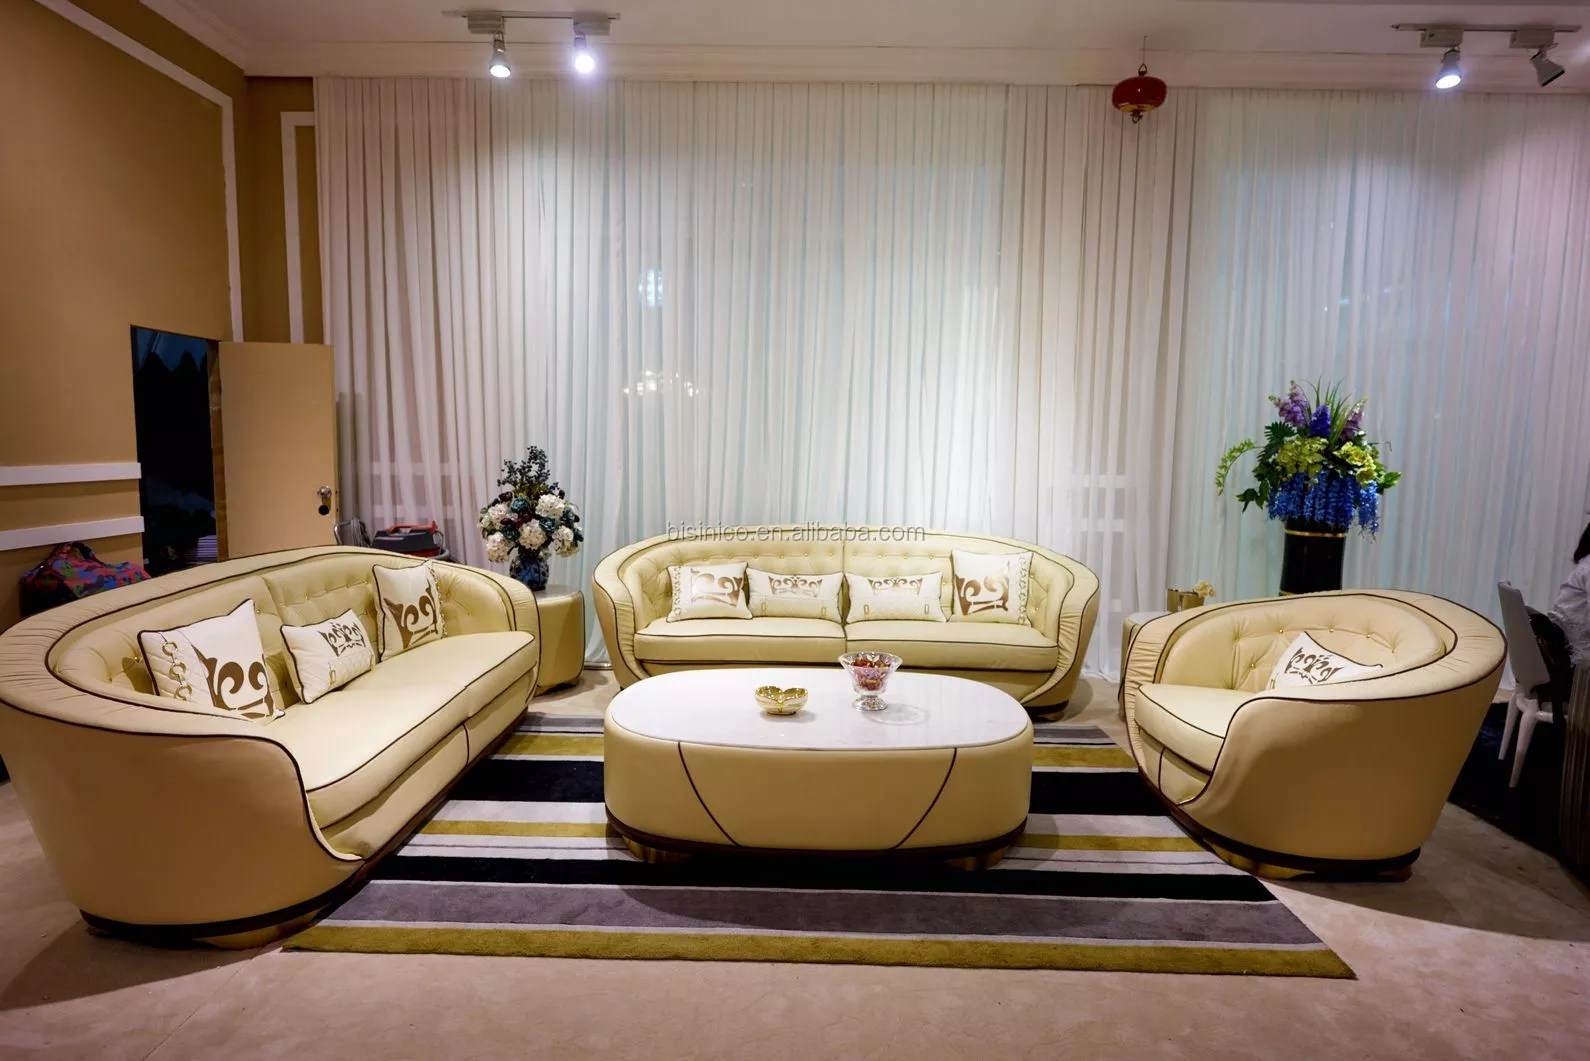 Classical Contemporary Living Room Furniture Enveloping Tufted Sofa Set With Sleek Design Comfortable Leather Upholstery Sofas Buy Luxury Living